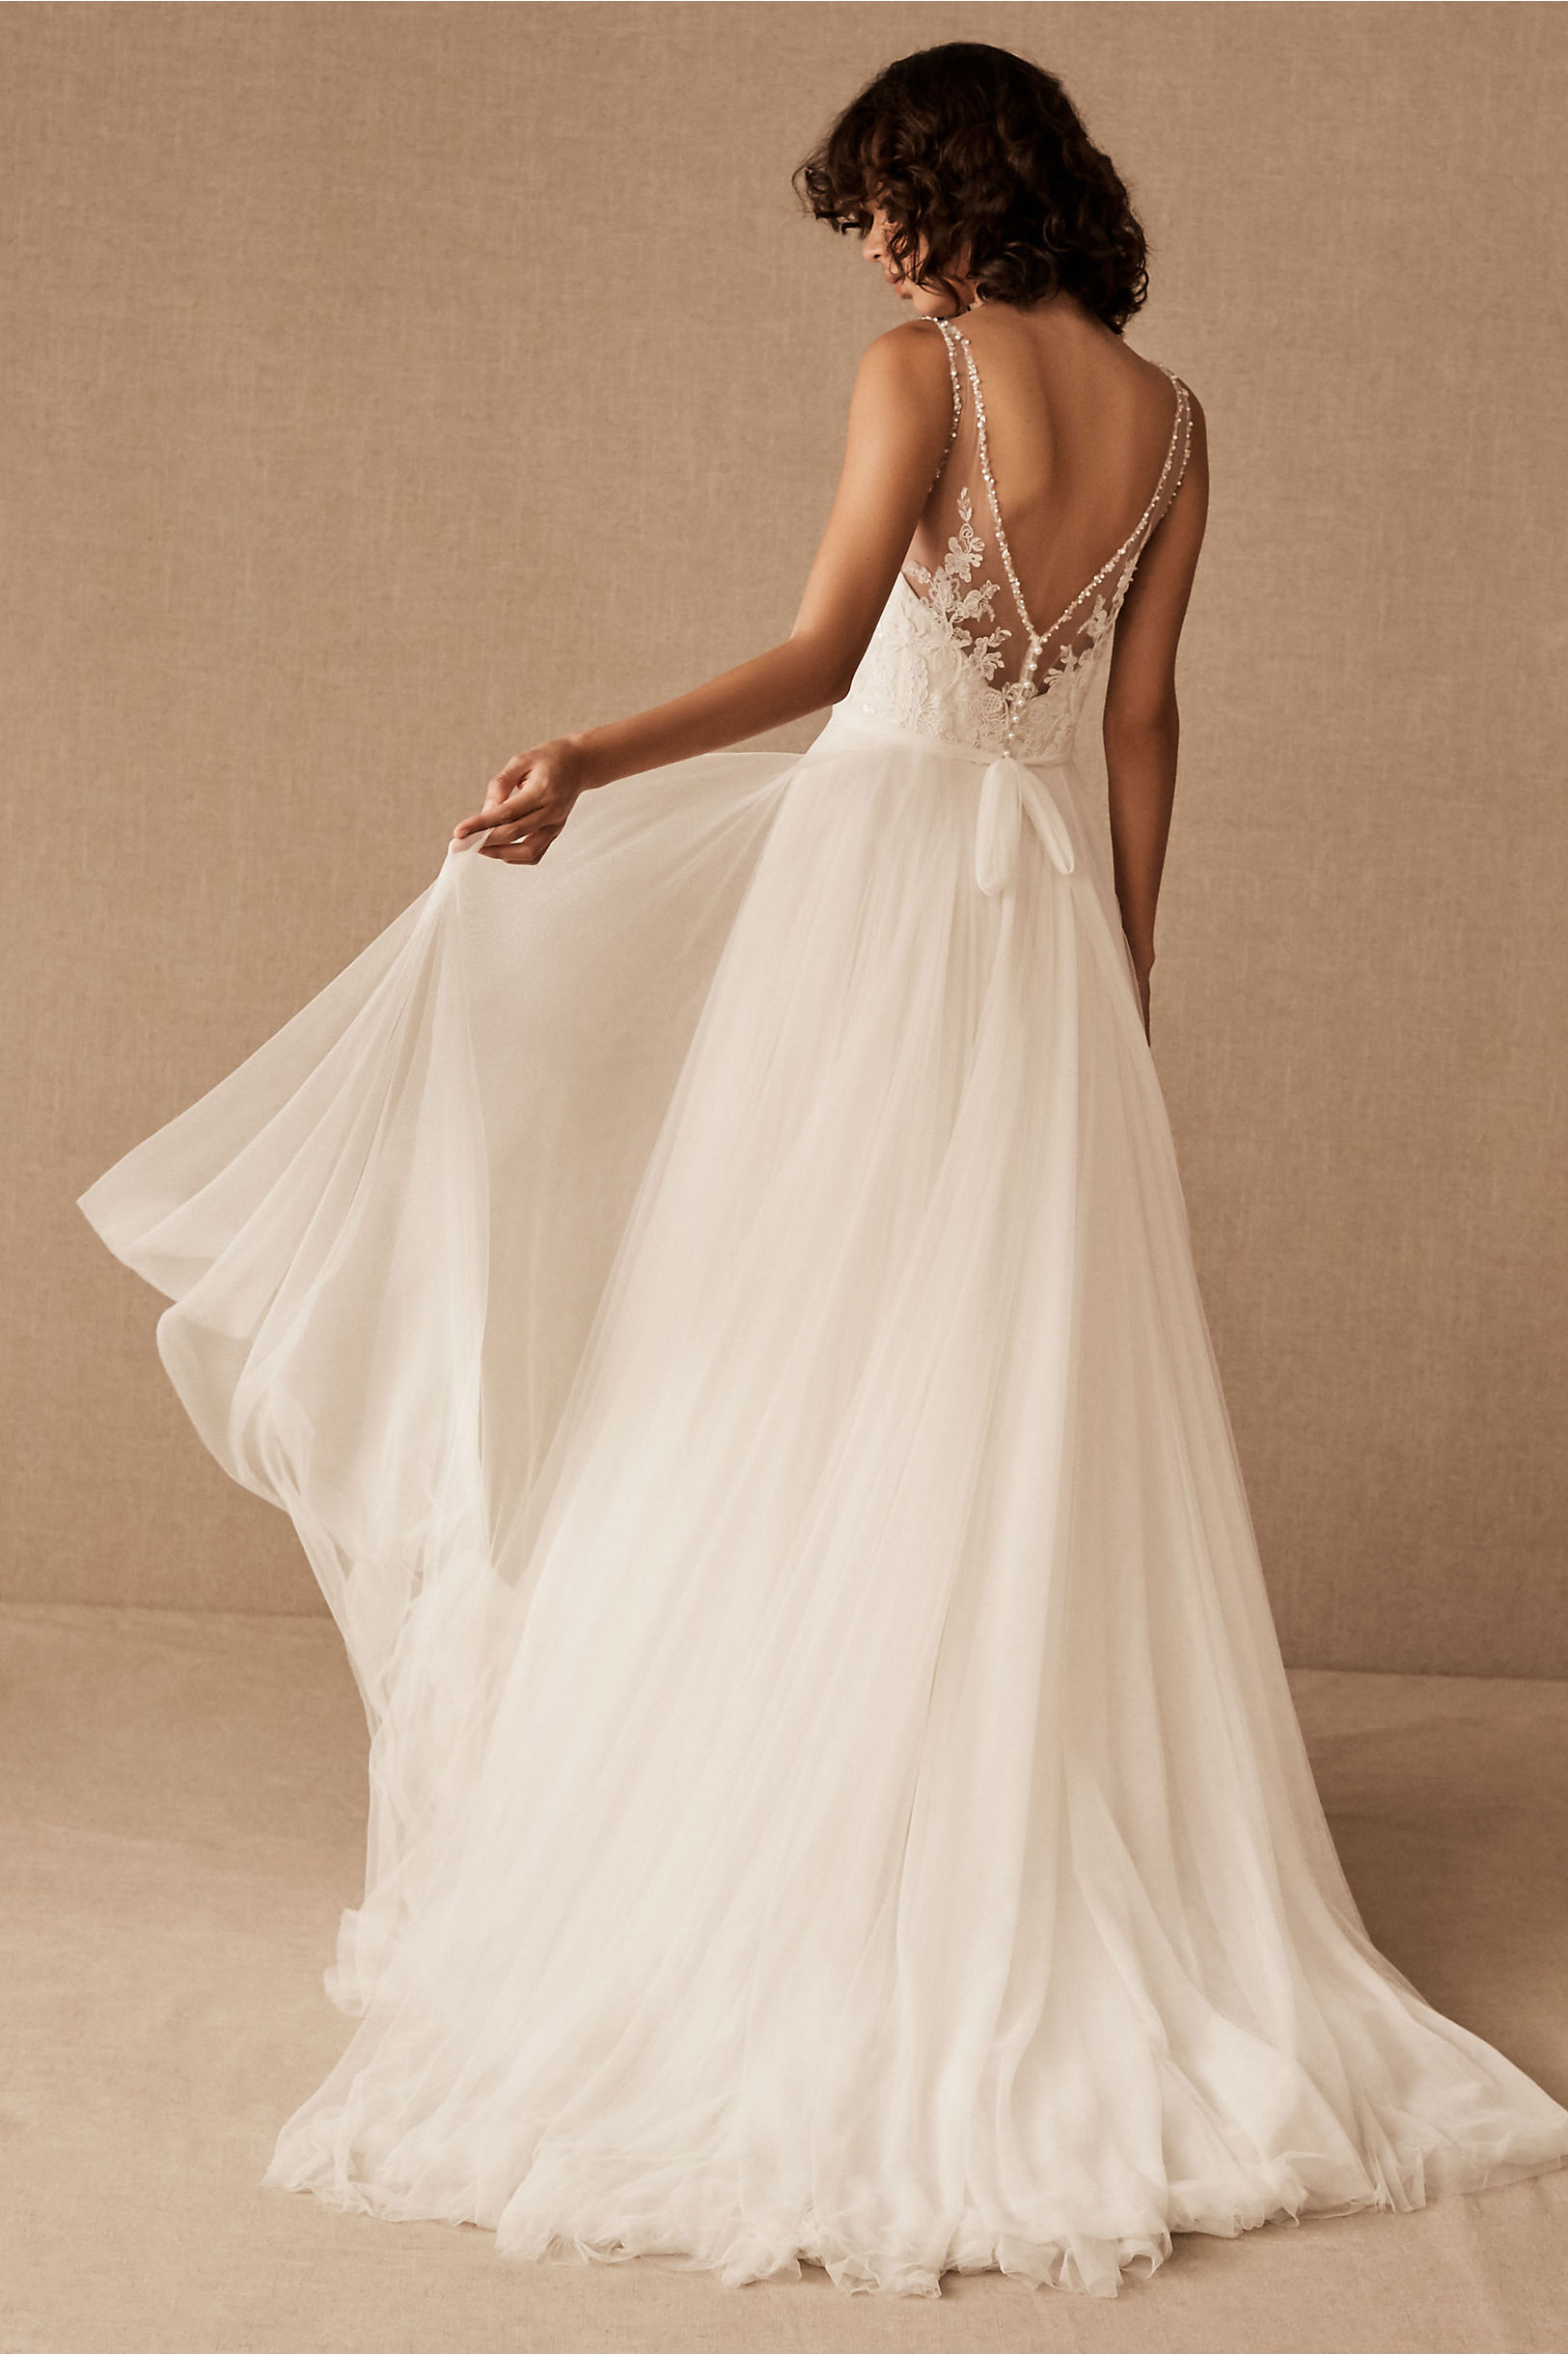 Cassia Gown Ivory/Champagne in Bride | BHLDN